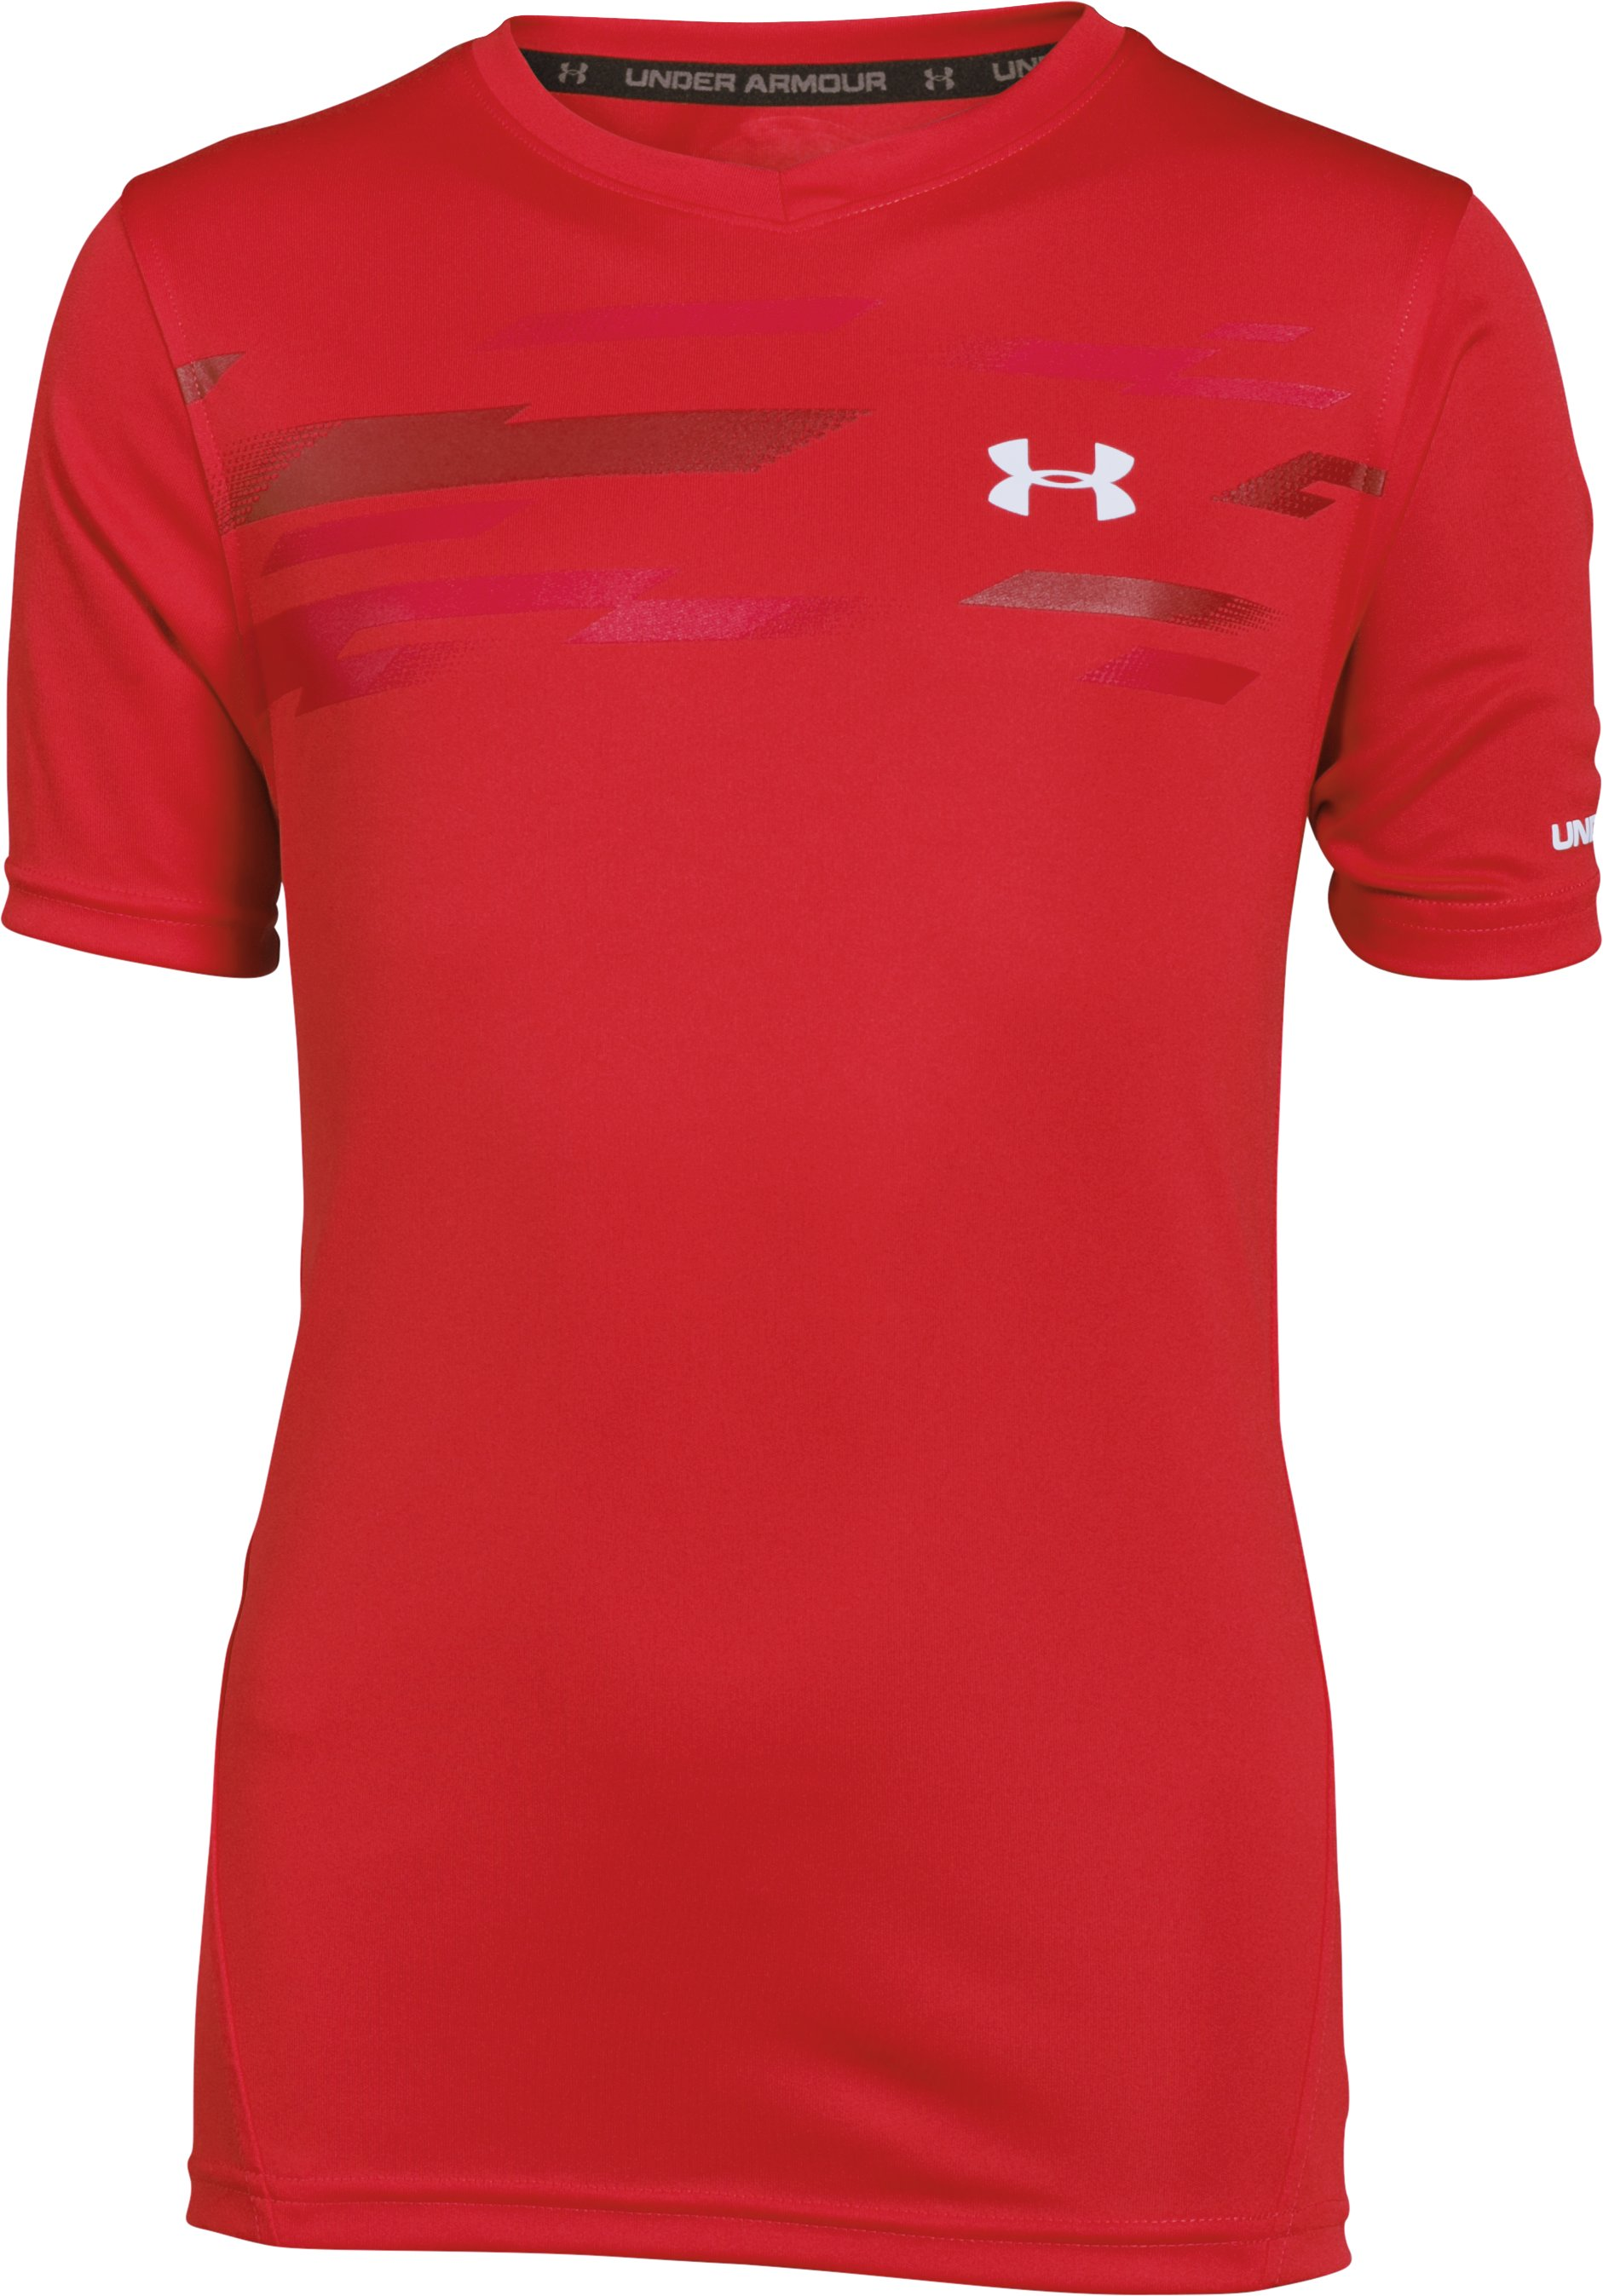 Boys' UA Challenger Training Shirt, RISK RED, zoomed image